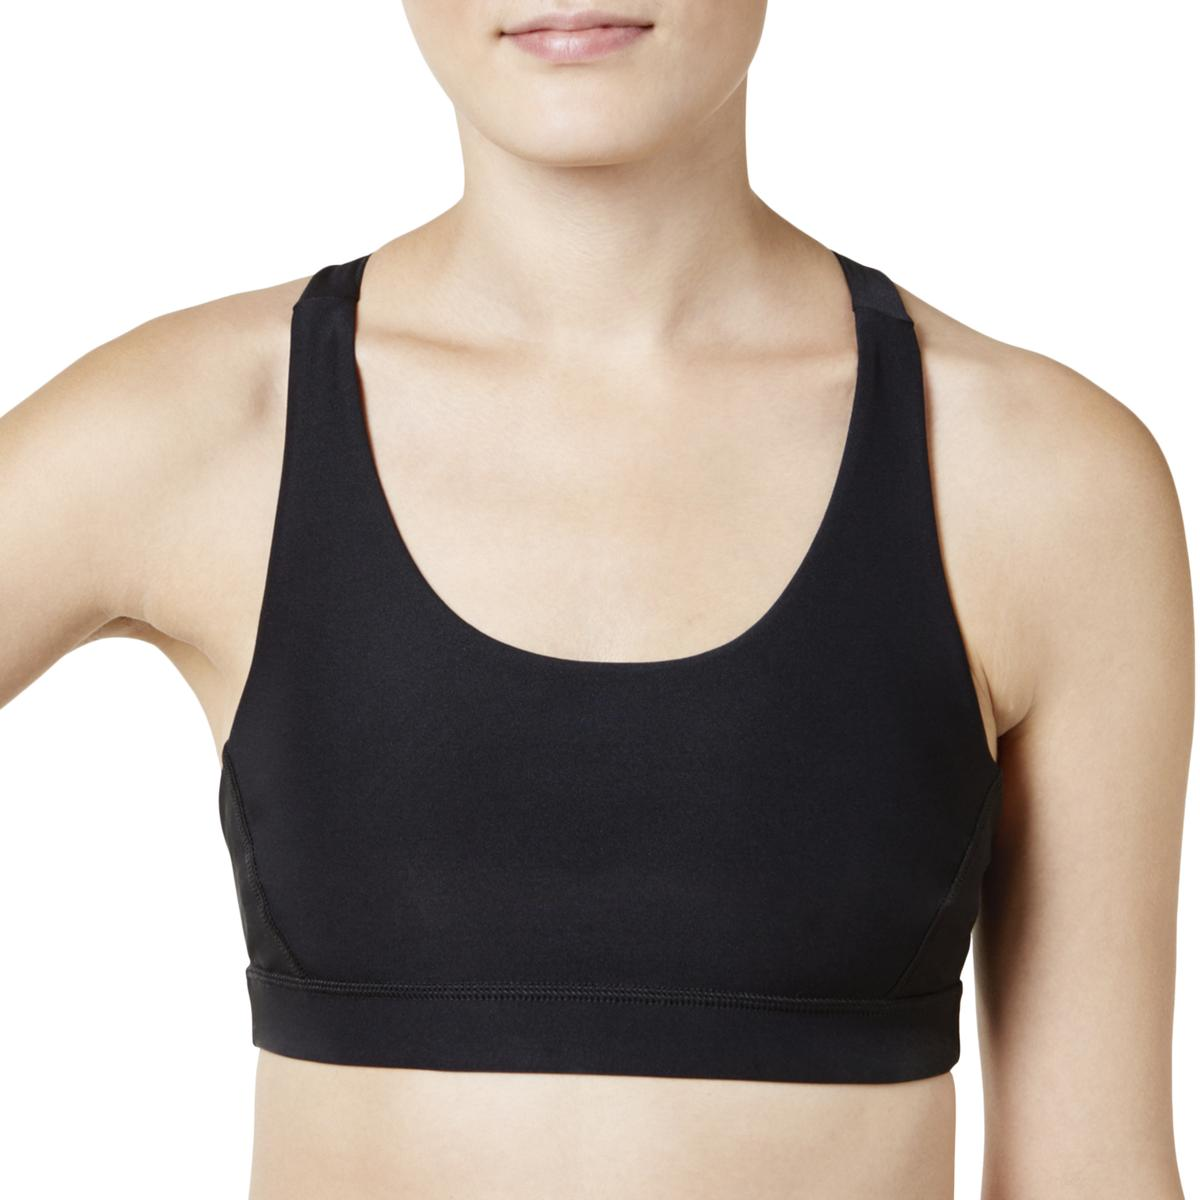 f46fb775e2164 Details about Ideology Womens Mid Impact Seamless Fitness Sports Bra  Athletic BHFO 5400